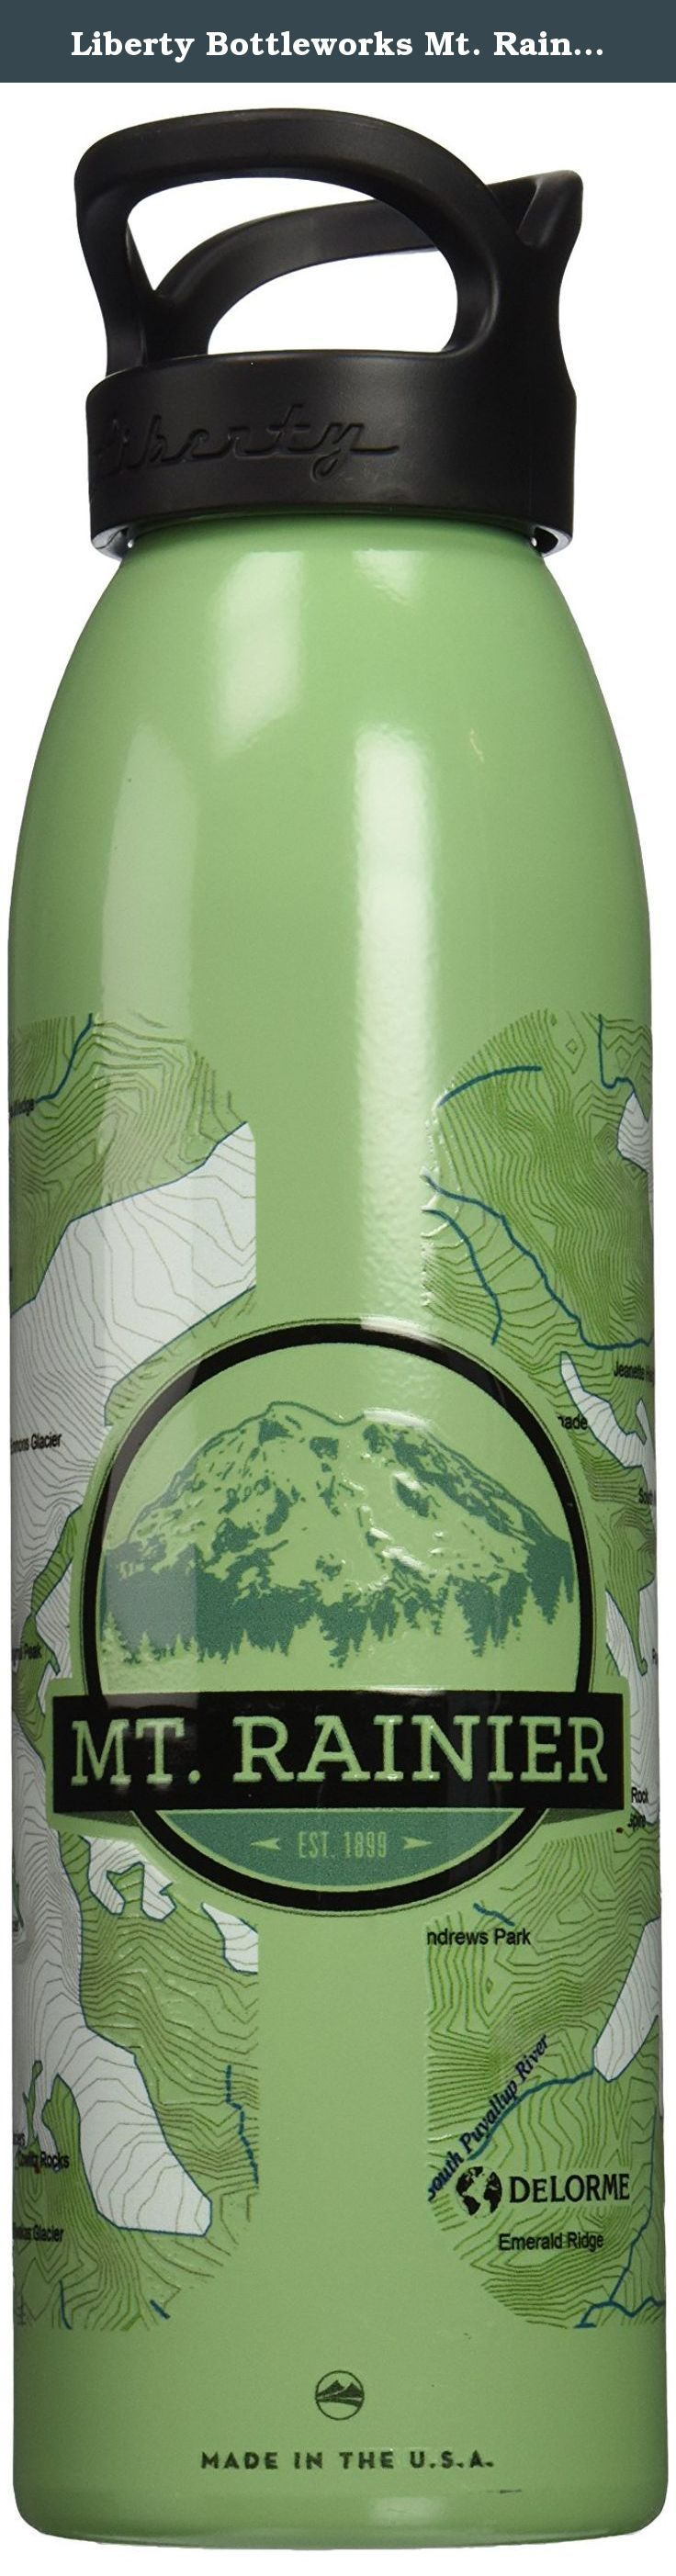 Liberty Bottleworks Mt. Rainier Standard Water Bottle, Edamame, 24 oz/Medium. Liberty bottleworks is the only metal bottle manufacturer on the market that makes everything completely in America. Liberty offers fully customizable cylindrical printing onto a variety of solid color finishes, including: gloss, luster and metallic. There's something here for everyone. We produce our bottles in a renewable manner; the metal is formed in our zero-waste factory with super strong and partially...